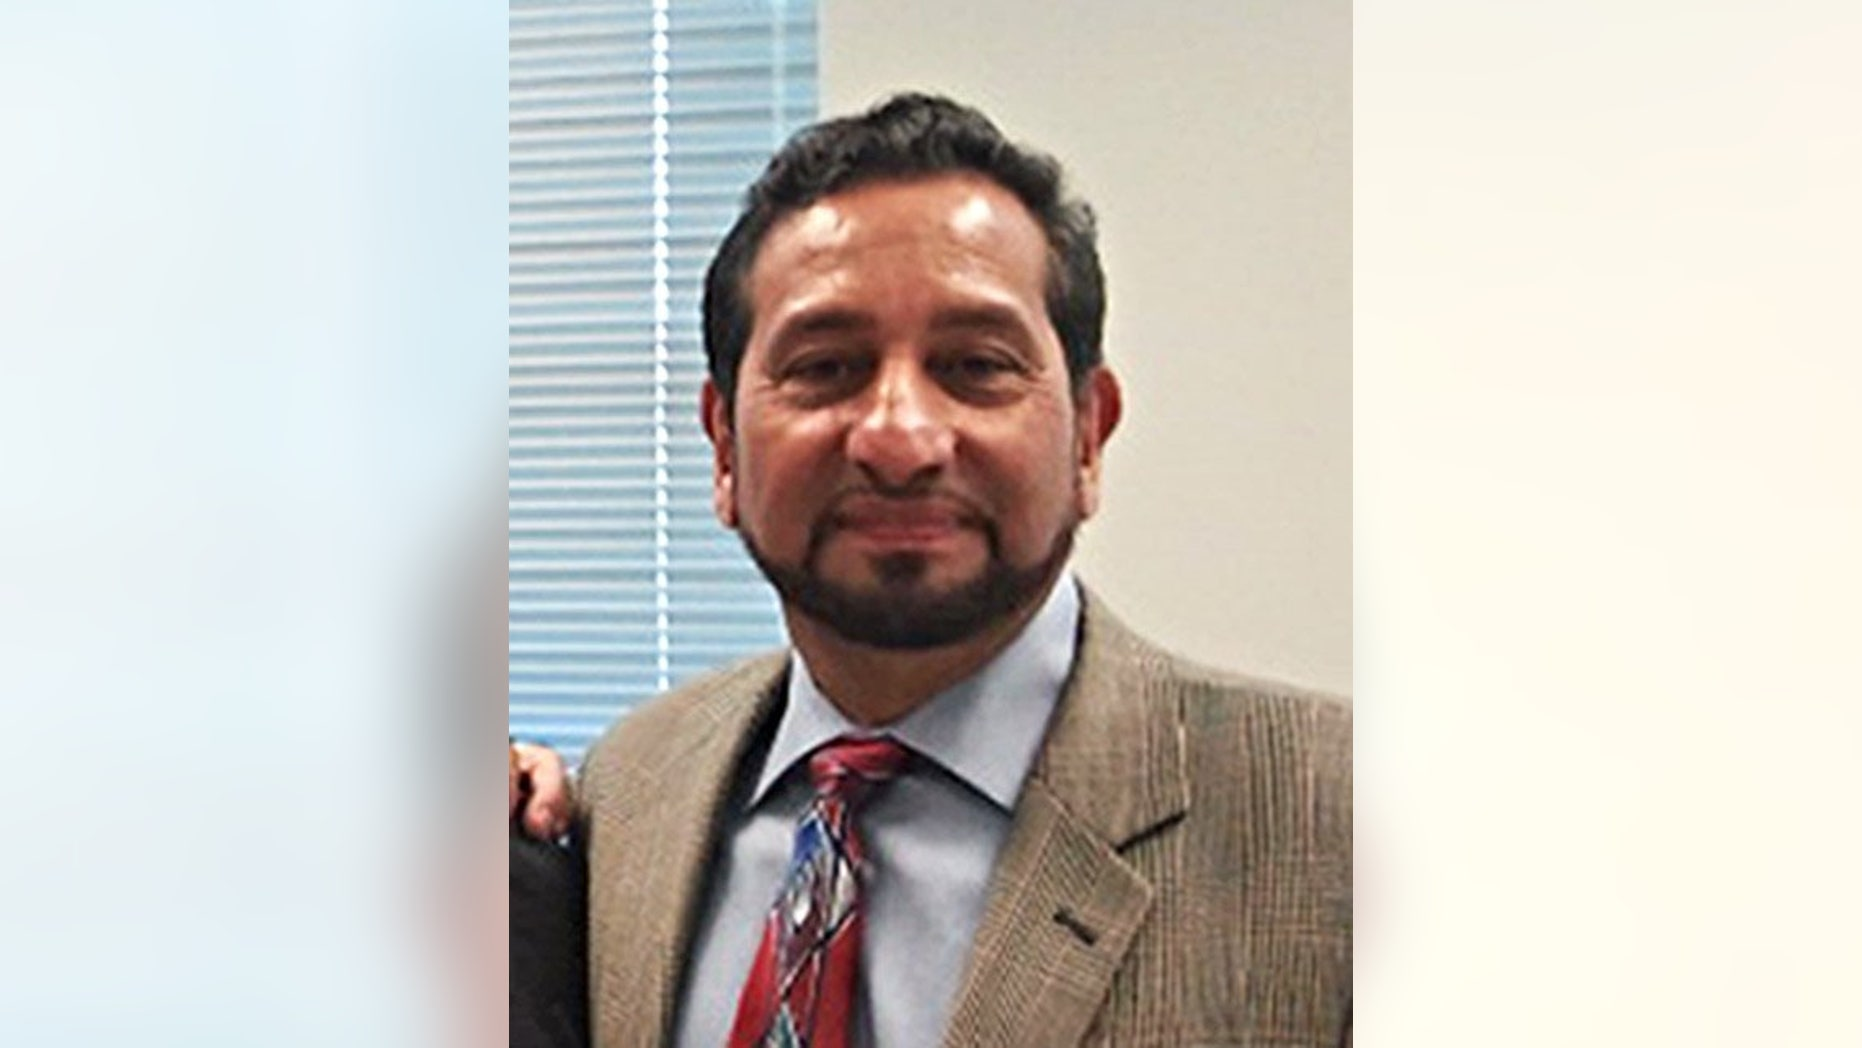 """This photo taken Aug. 1, 2015, shows freelance journalist Jacinto """"Jay"""" Torres Hernandez.   The head of a United Nations agency on Wednesday, June 22, 2016, condemned the death of a Hernandez, whose body was found with a gunshot wound in the back yard of a home in Dallas, Texas. UNESCO Director-General Irina Bokova said from Paris that authorities must determine the motive for the killing of Spanish-language journalist Hernandez, 57. He was a longtime reporter and photographer for La Estrella who used the byline Jay Torres. La Estrella is a weekly publication of the Fort Worth Star-Telegram serving readers in the Dallas-Fort Worth region.(Juan Ramos/Star-Telegram via AP)"""